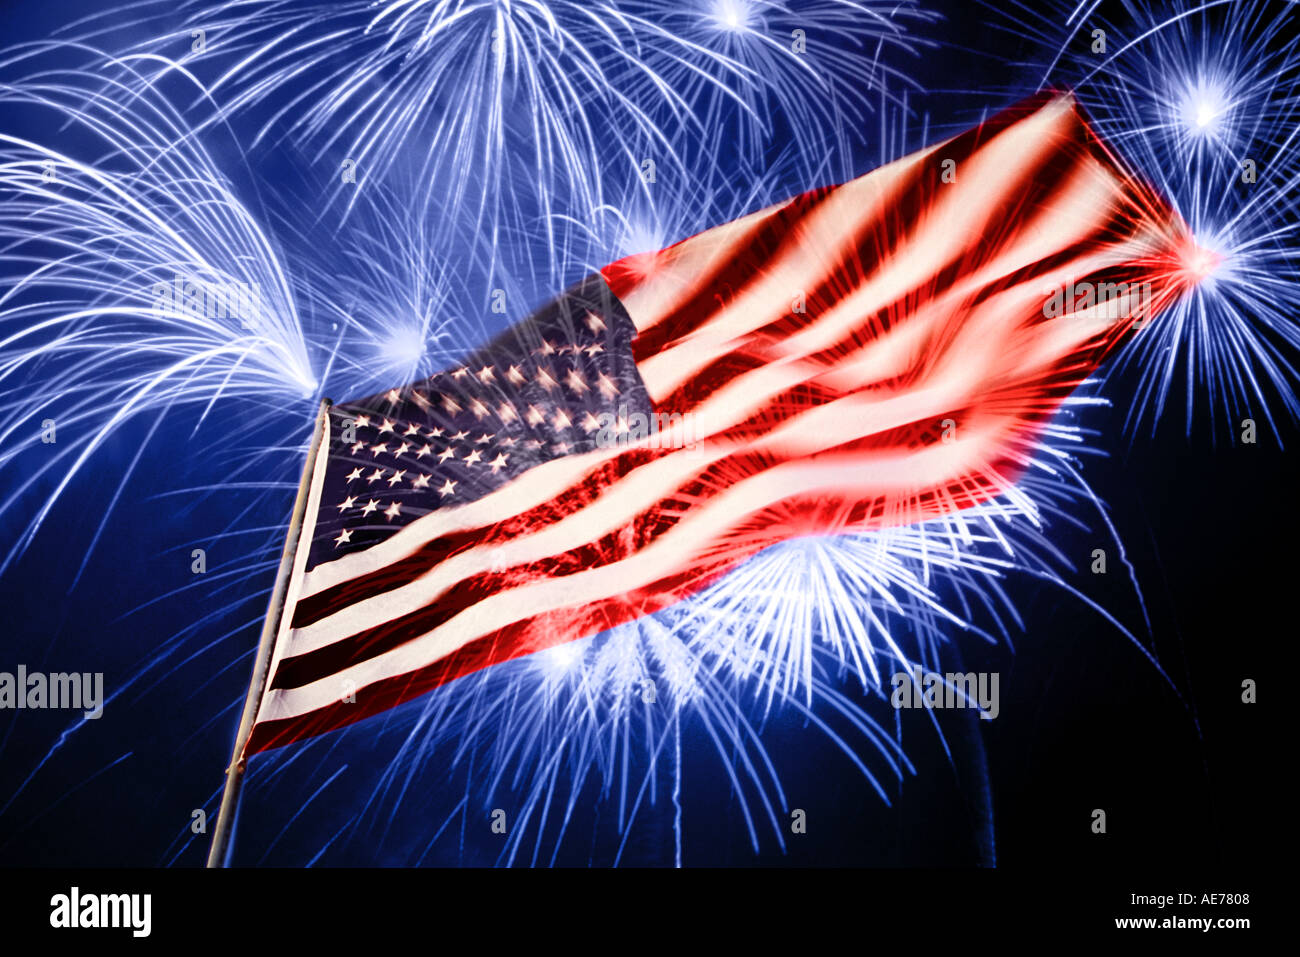 american flag at night with fireworks exploding in the air above